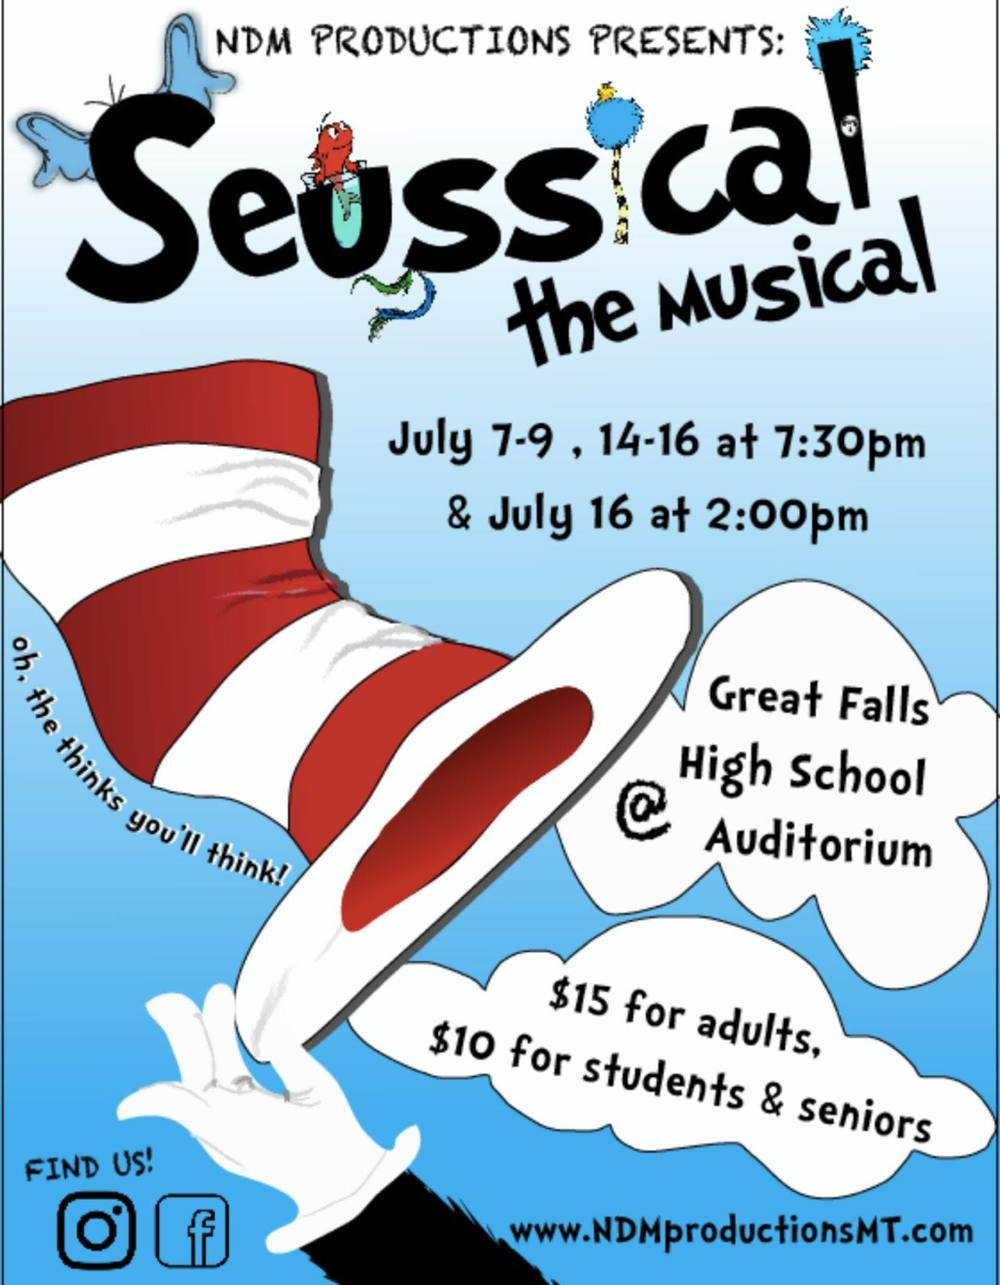 Seussical the musical show poster